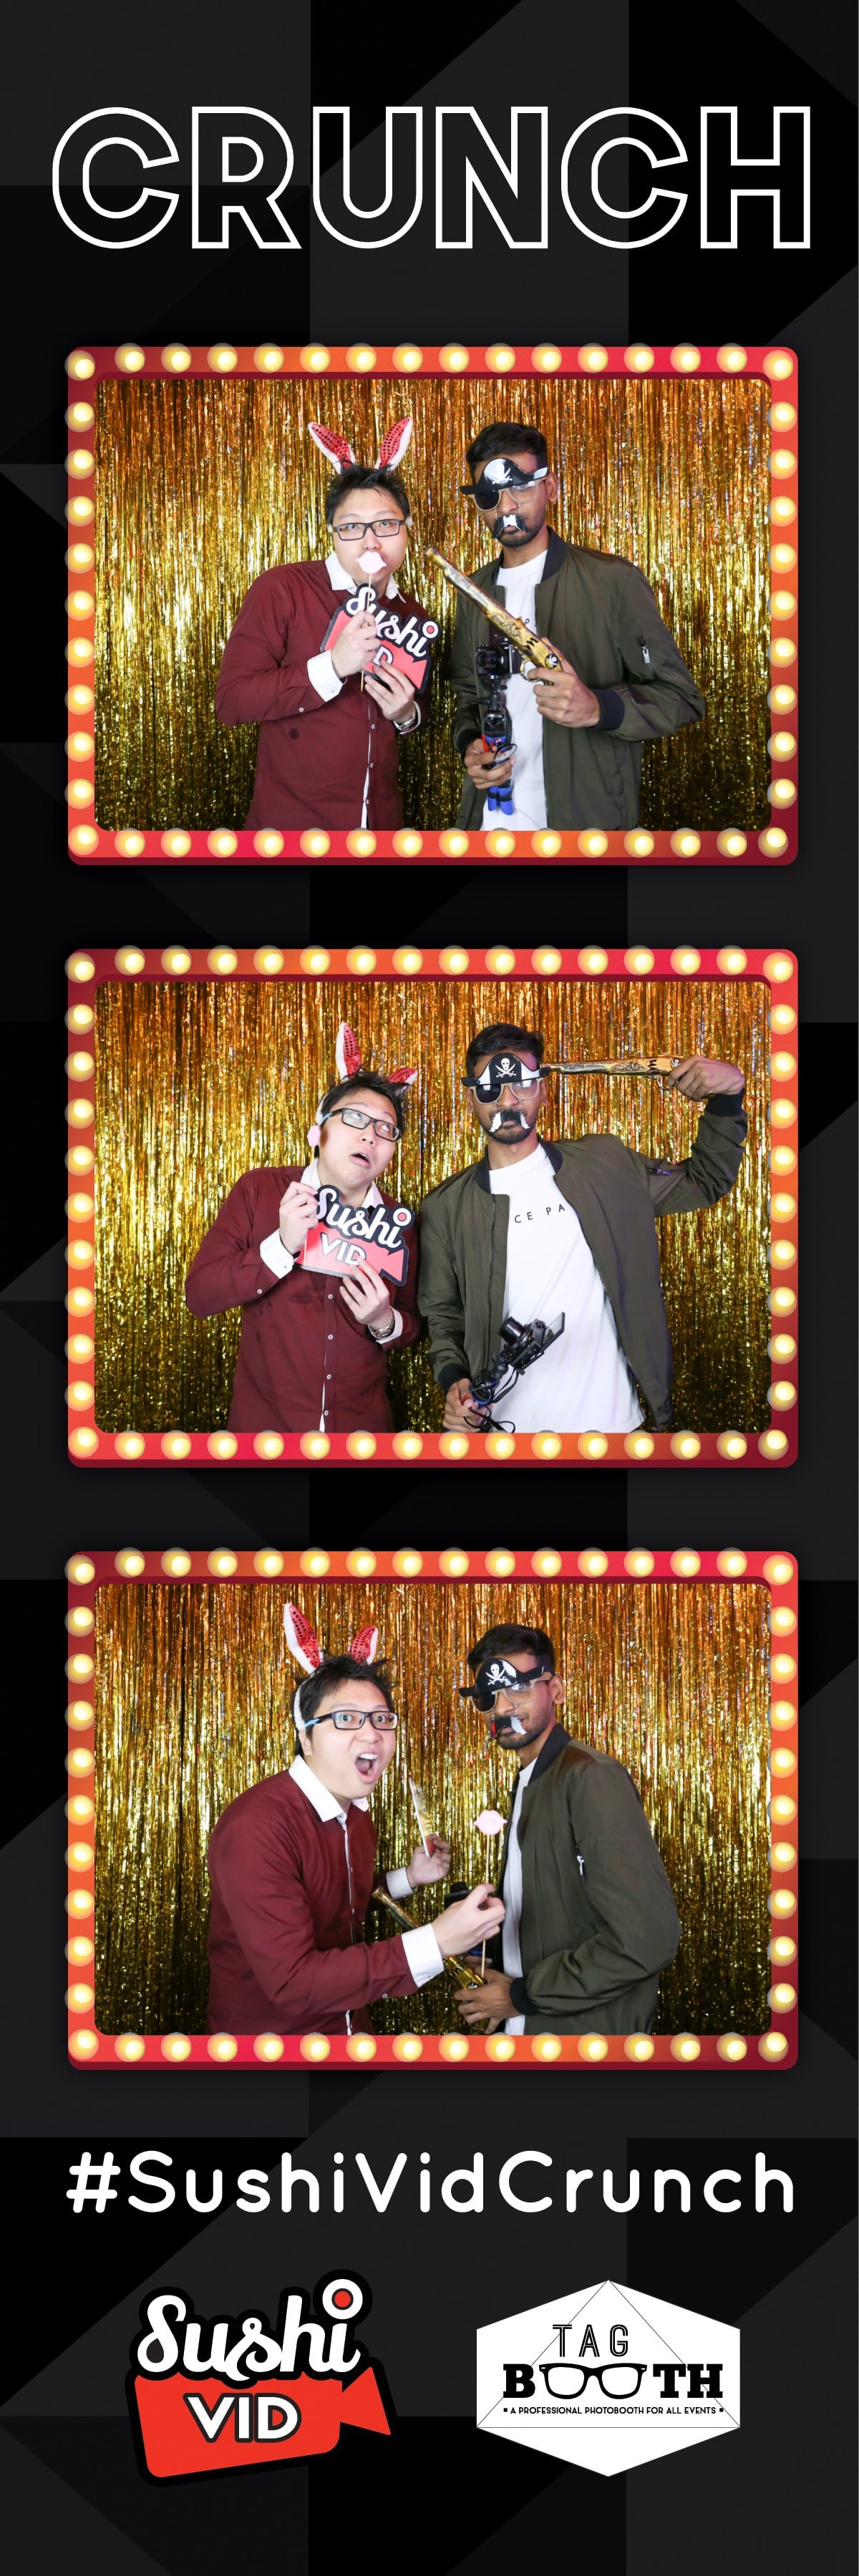 Sushivid+crunch+tagbooth1+48